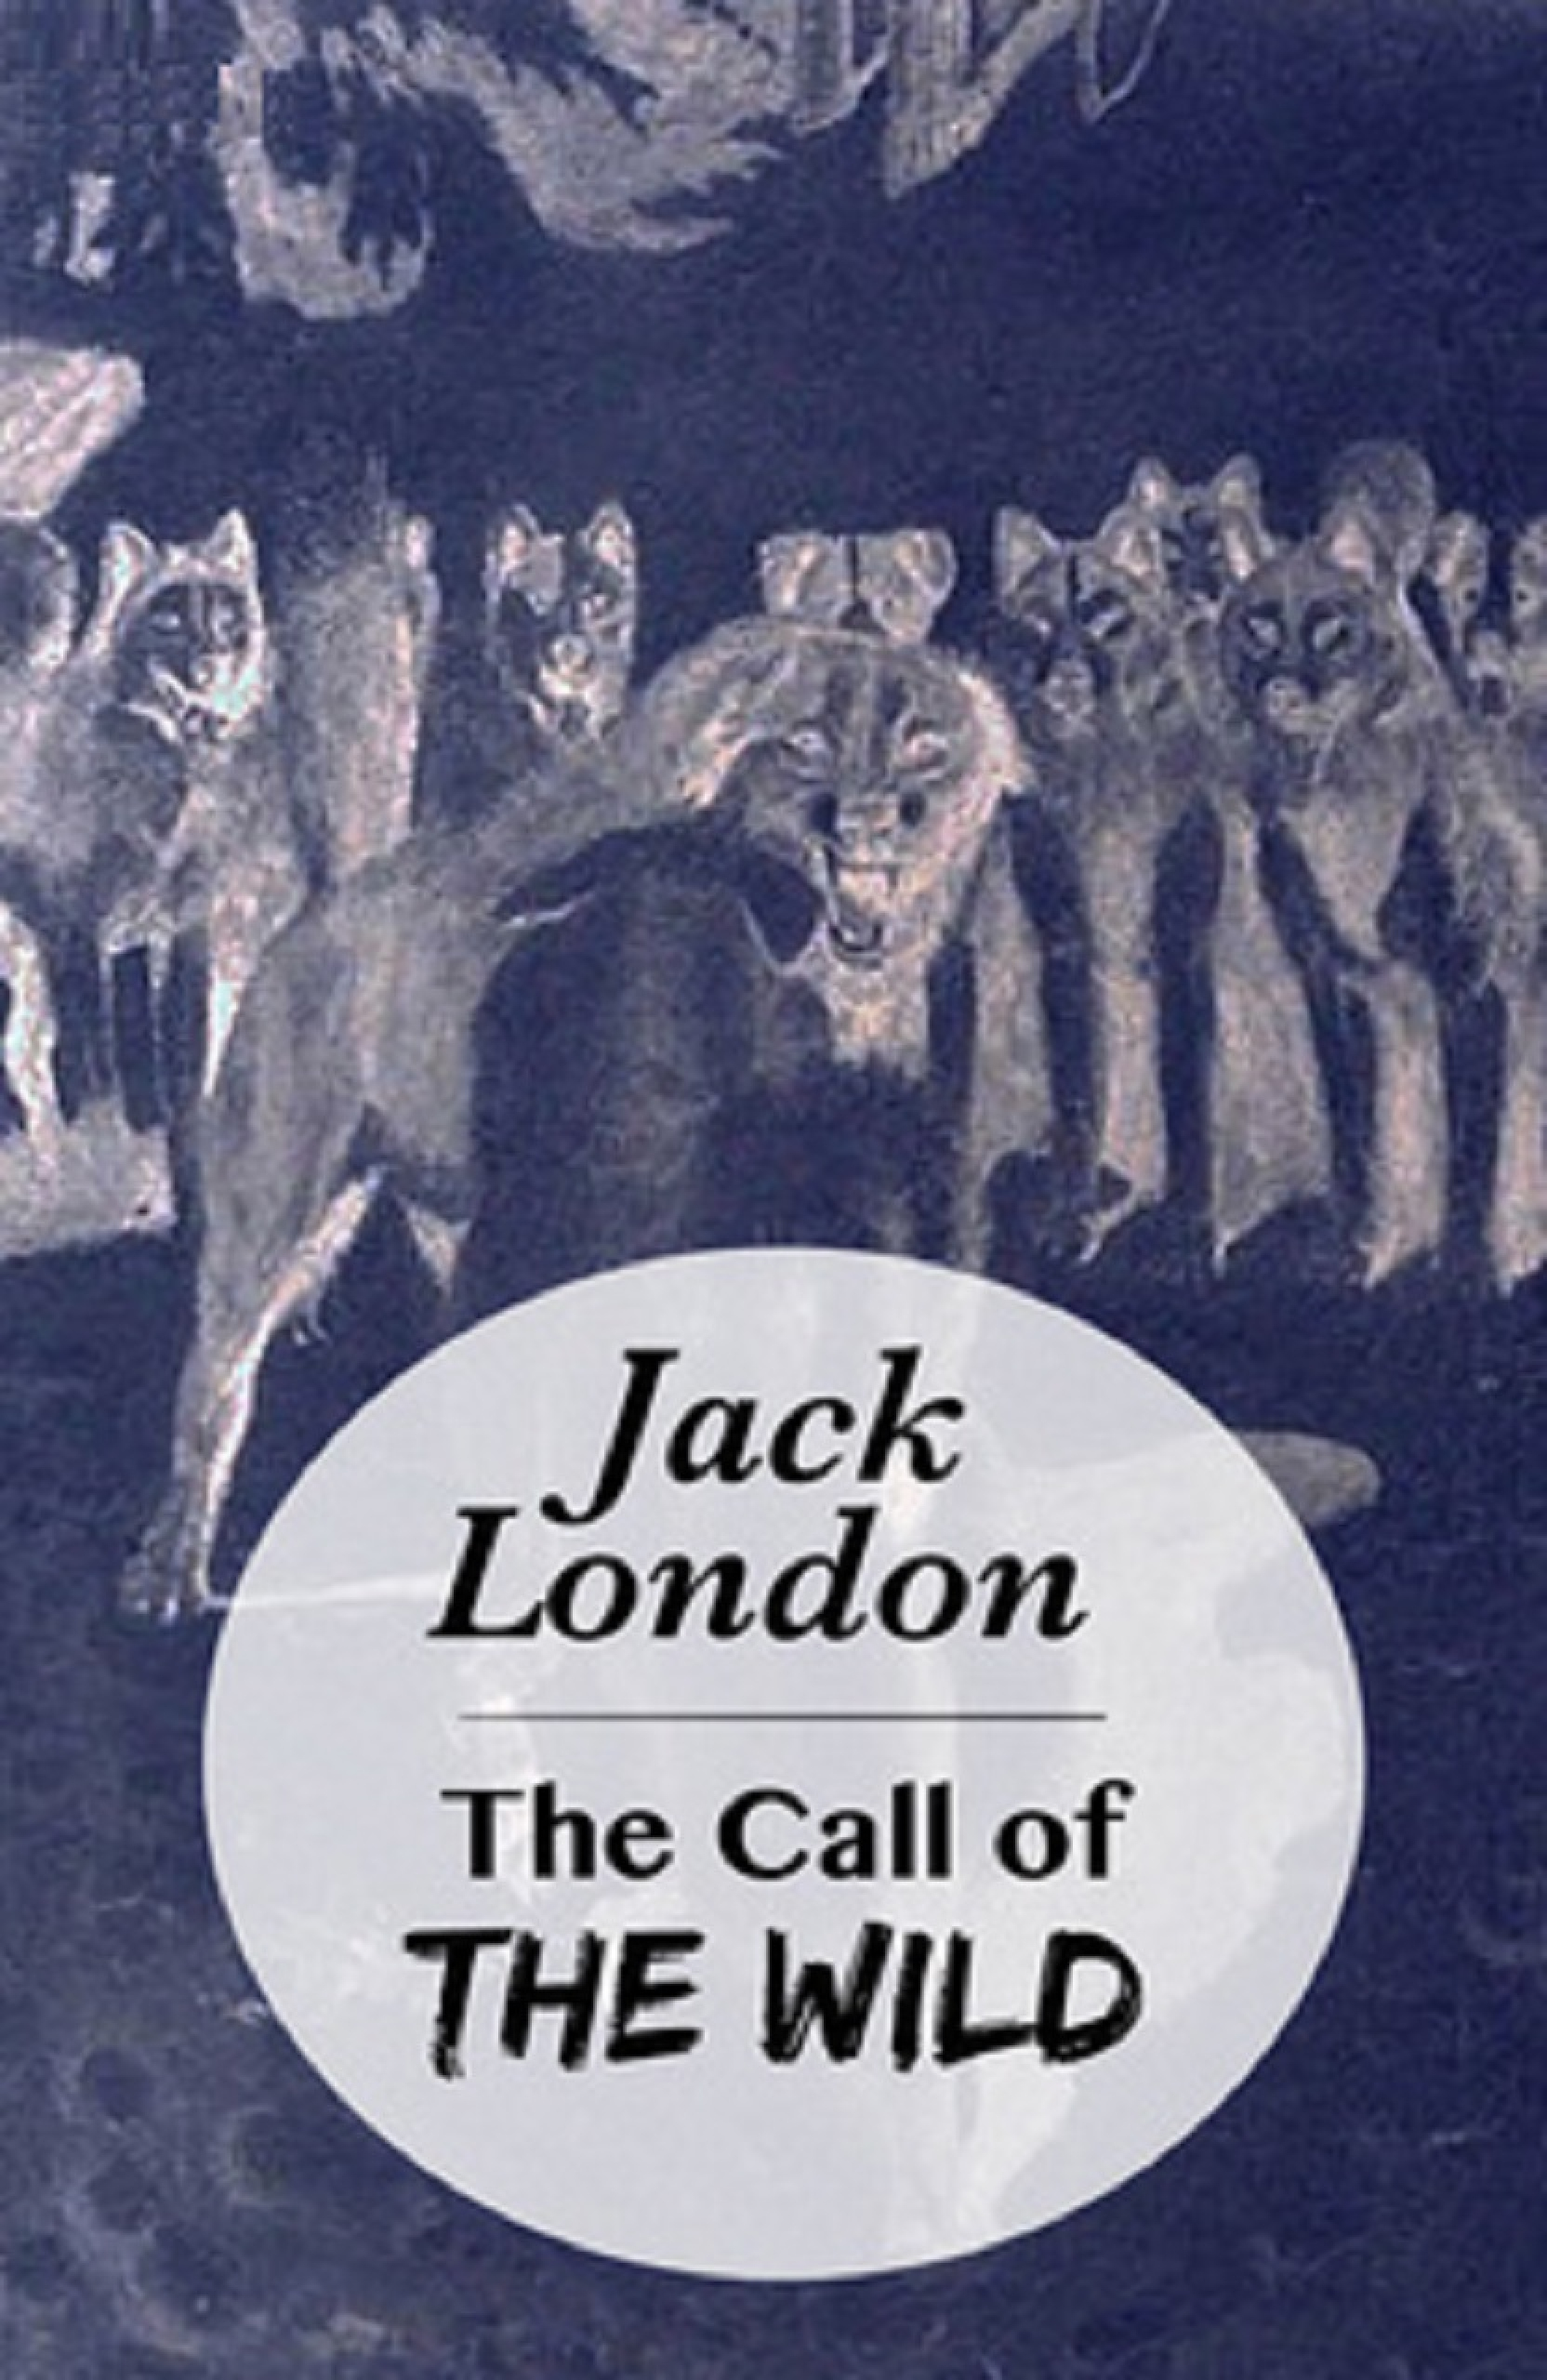 a dog named buck in the novel call of the wild by jack london A sled dog named buck (a cross between a st bernard and a scotch collie) will be one of the but what projects the call of the wild towards immortality is london's urgent and vivid style, and his jack london had already sold the rights to the novel outright for $2,000 because he wanted to buy.